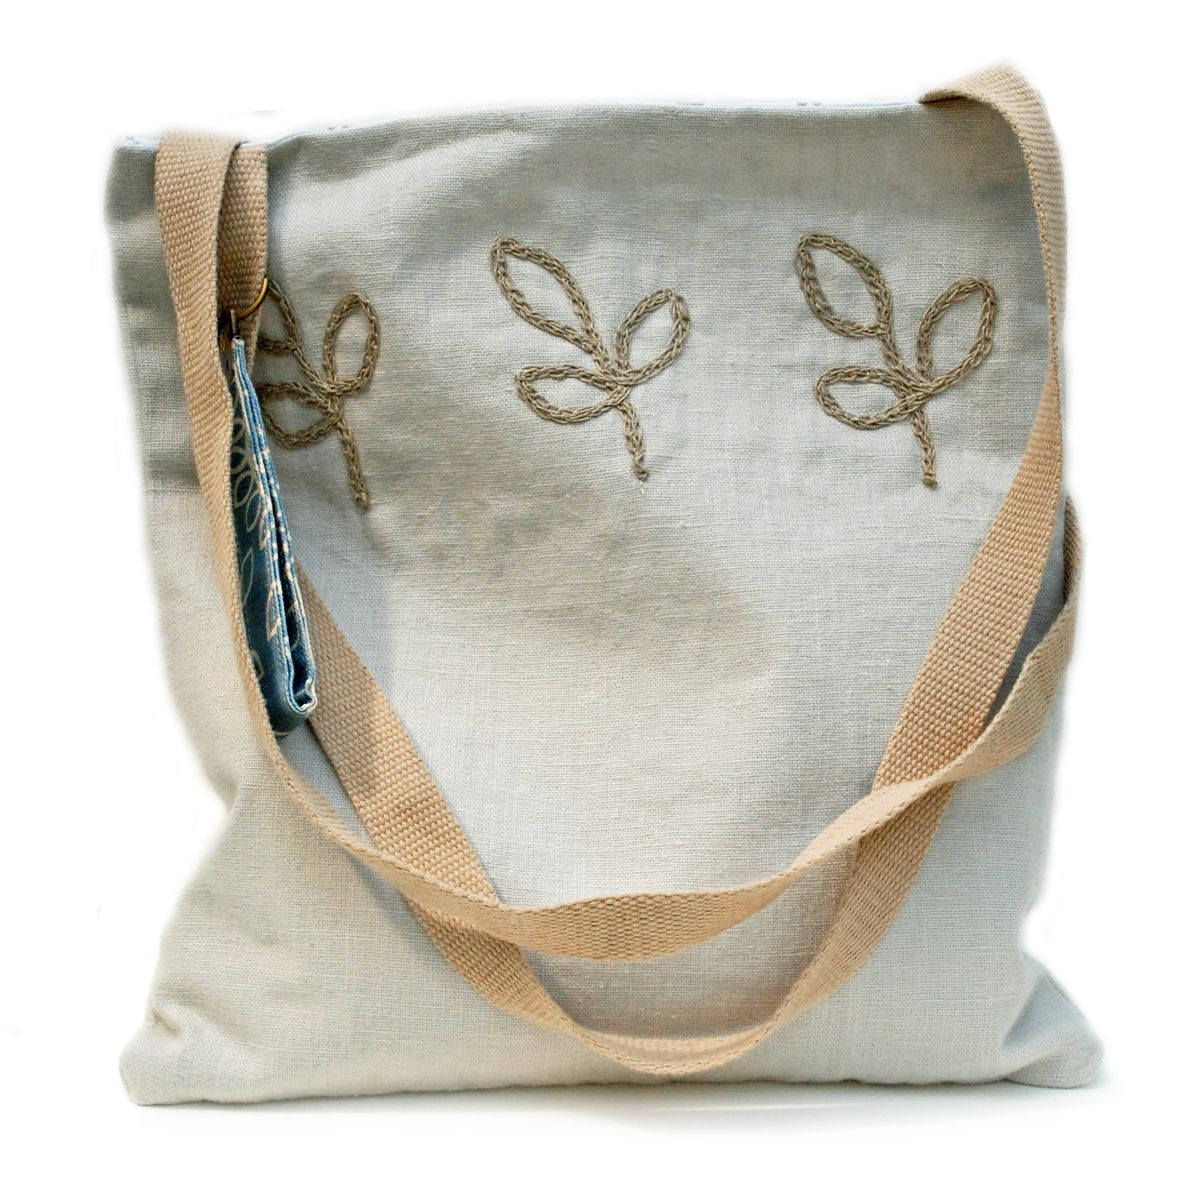 Linen tote with autumn leaves design